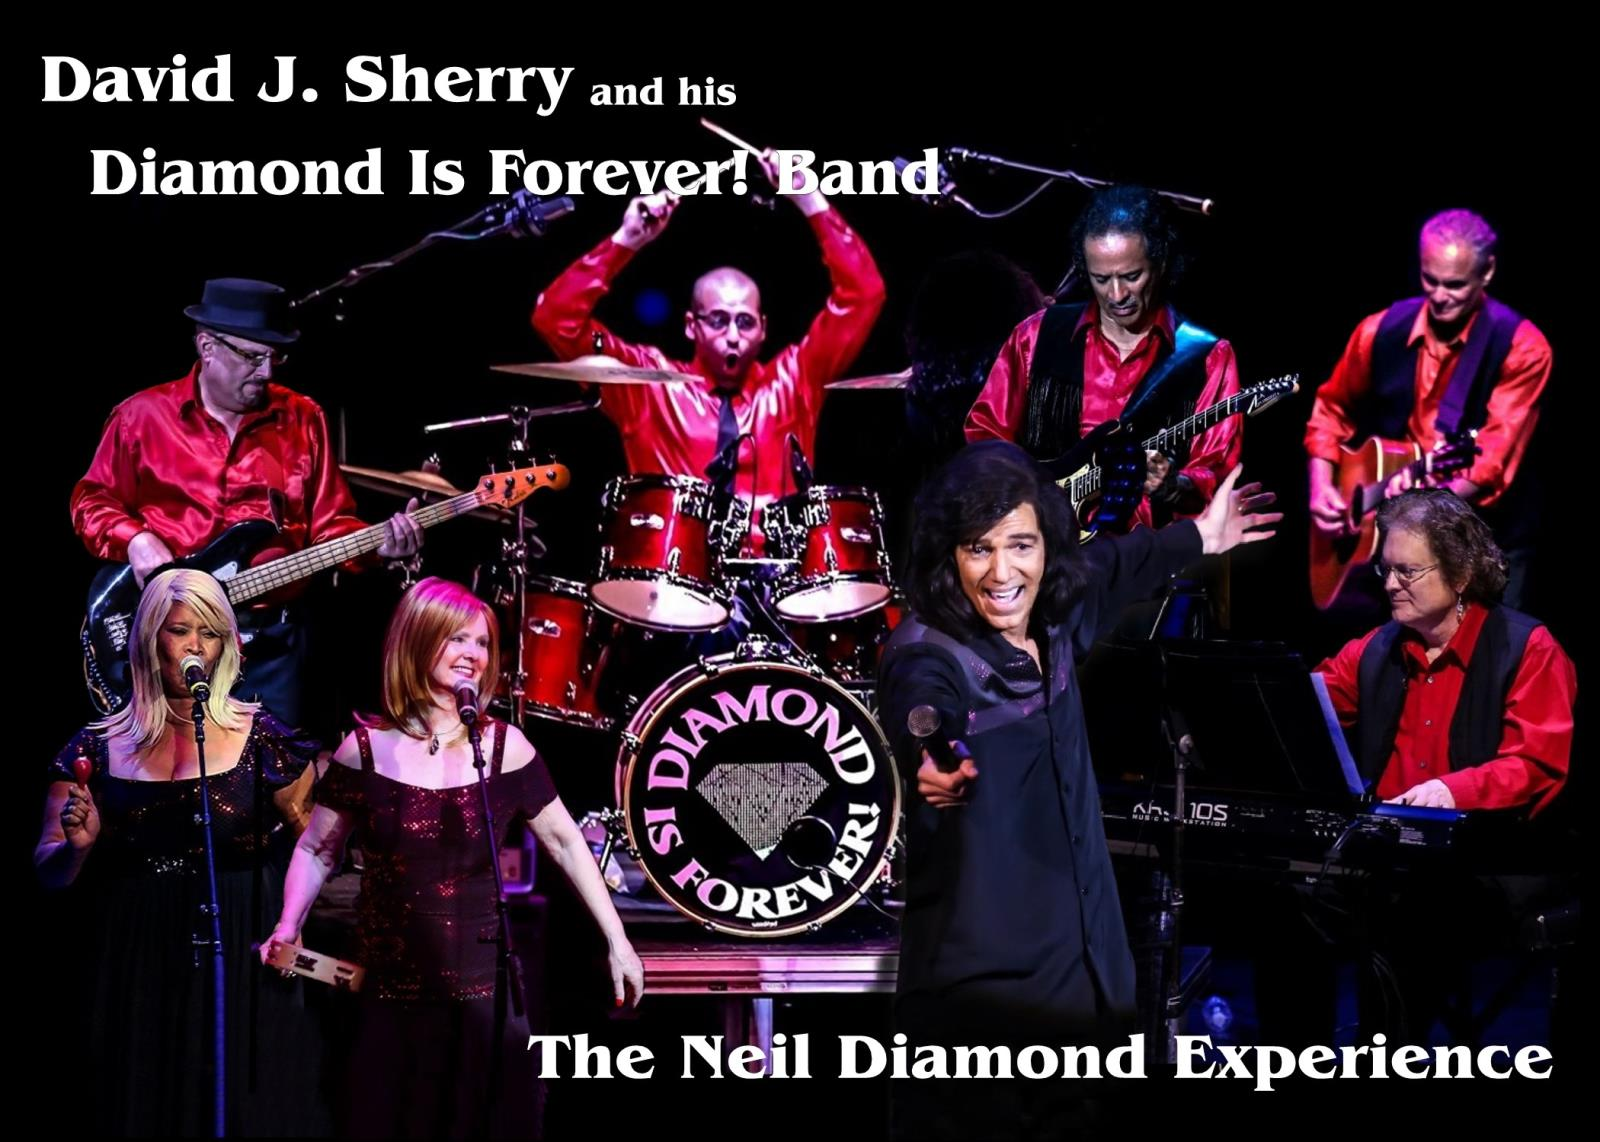 Diamond is Forever Band